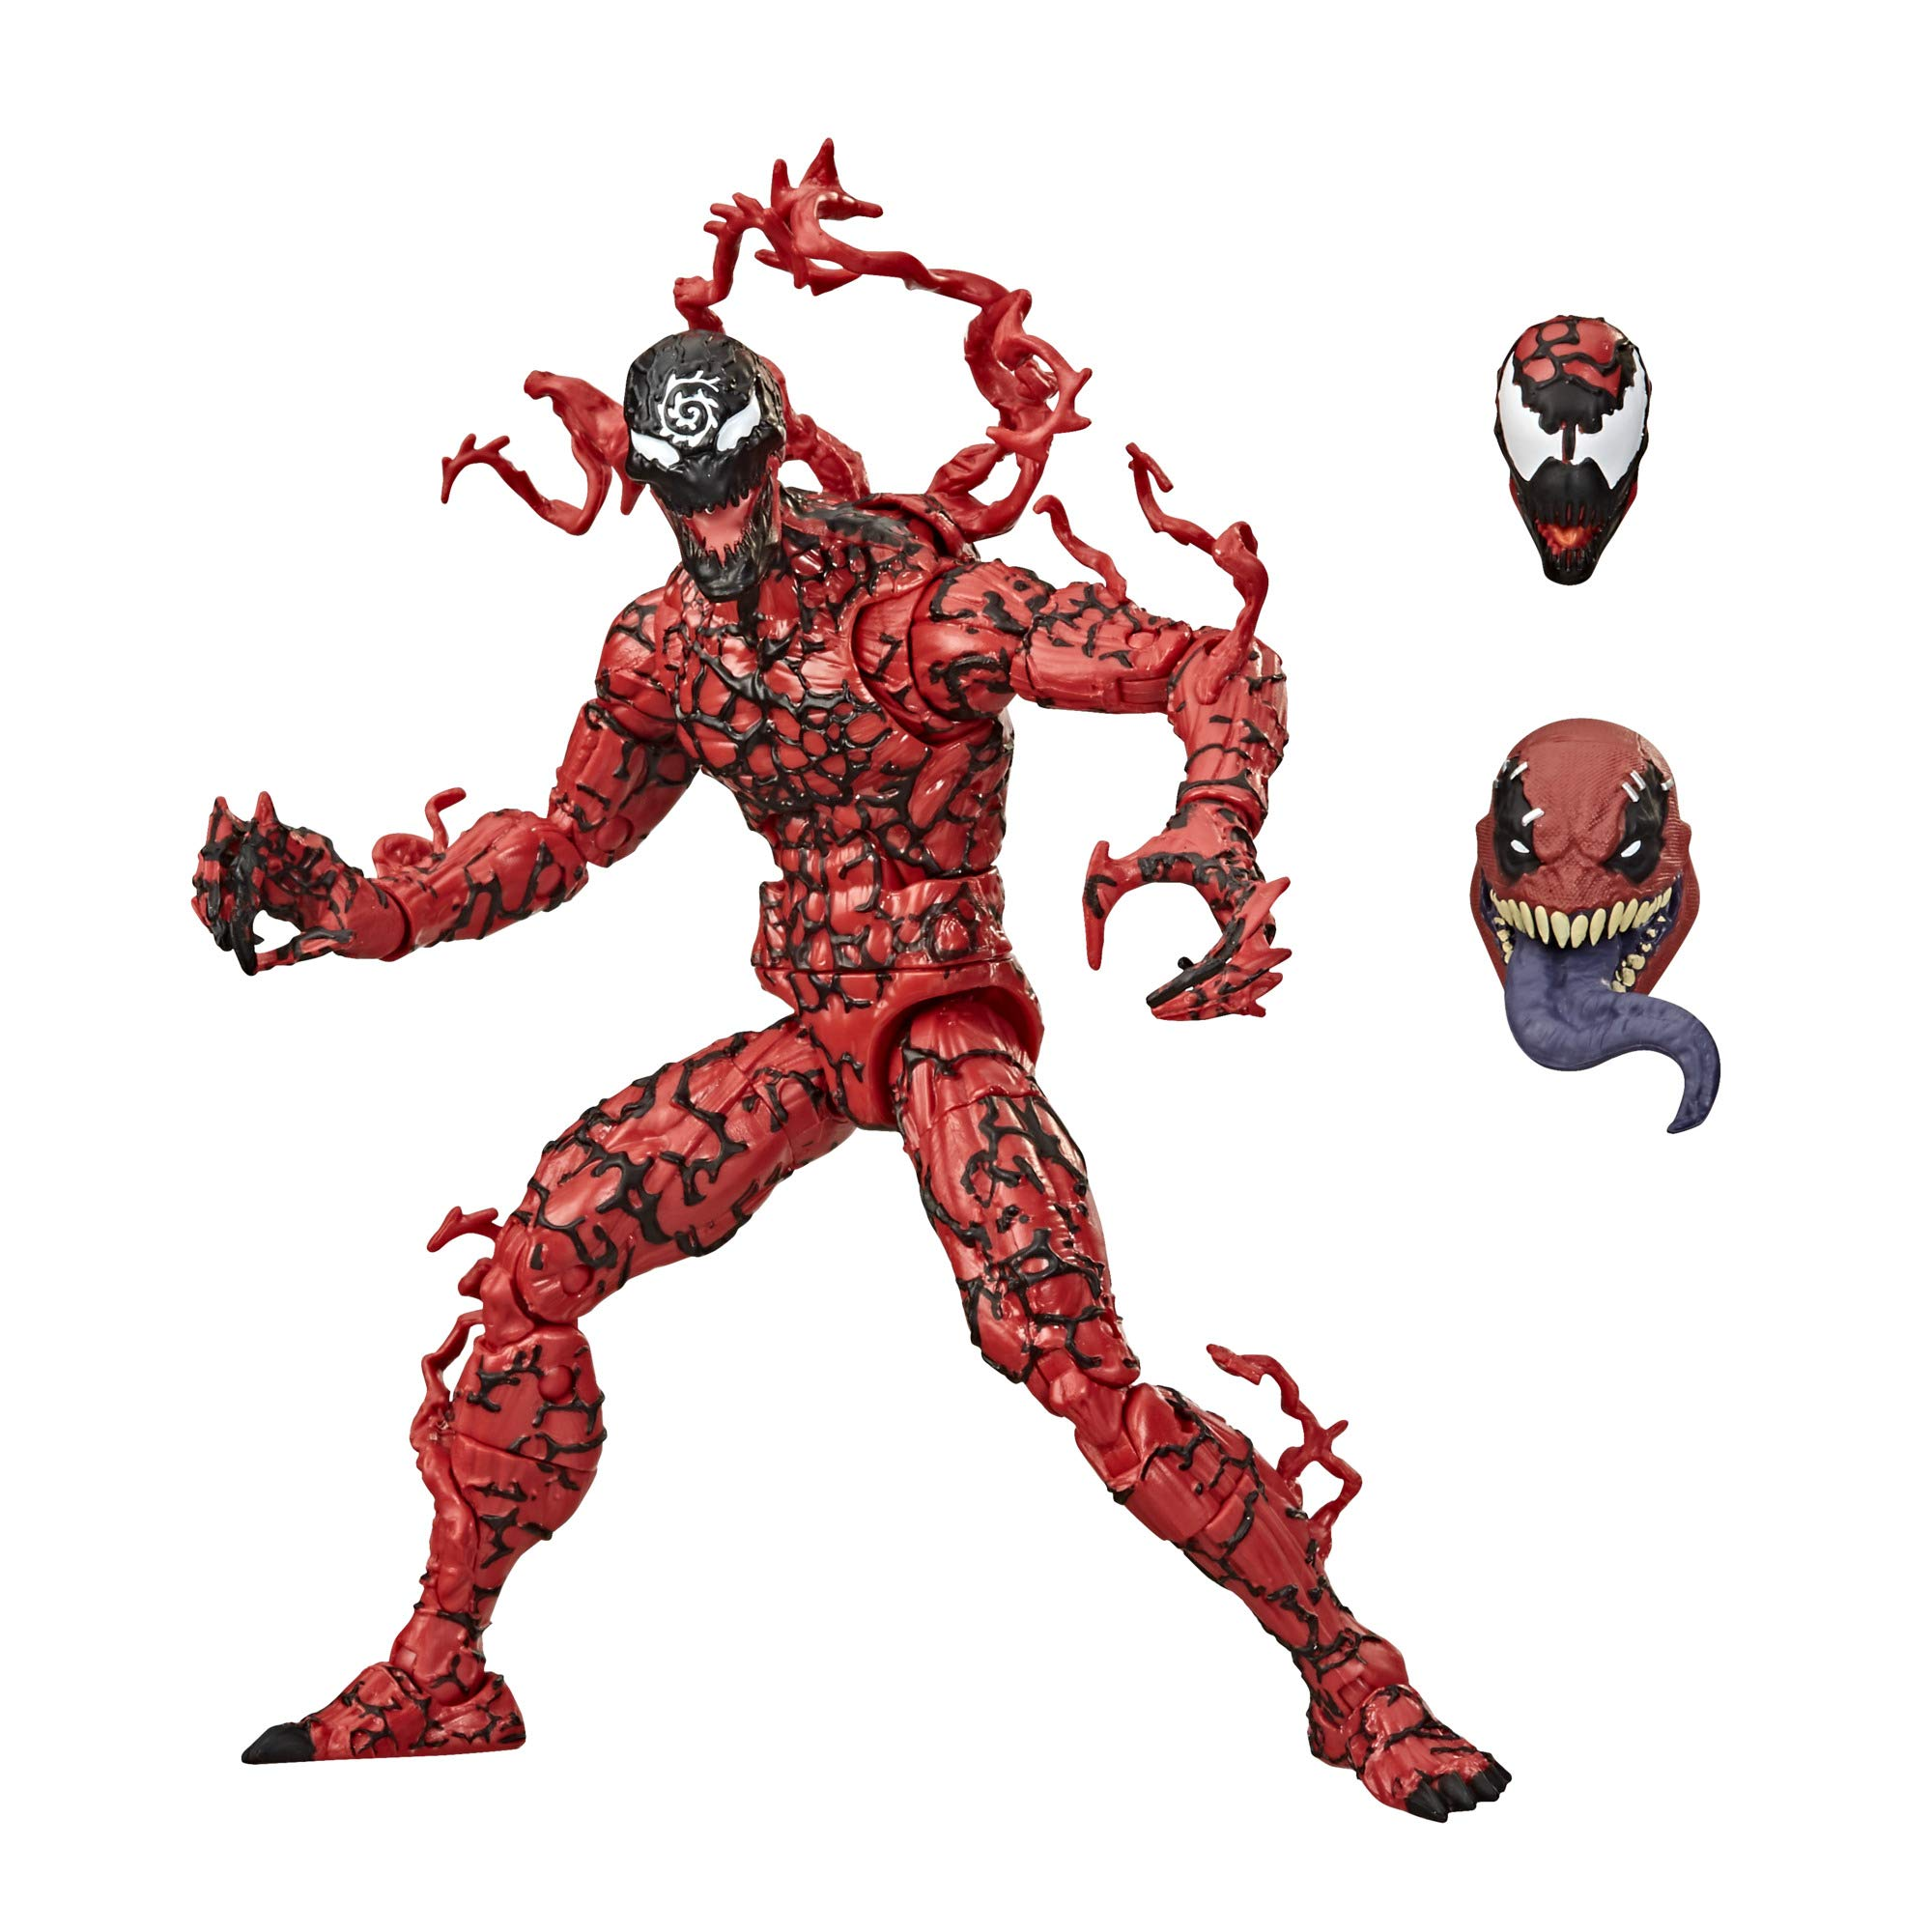 Hasbro Marvel Legends Series Venom 6-inch Collectible Action Figure Toy Carnage, Premium Design and 1 Accessory